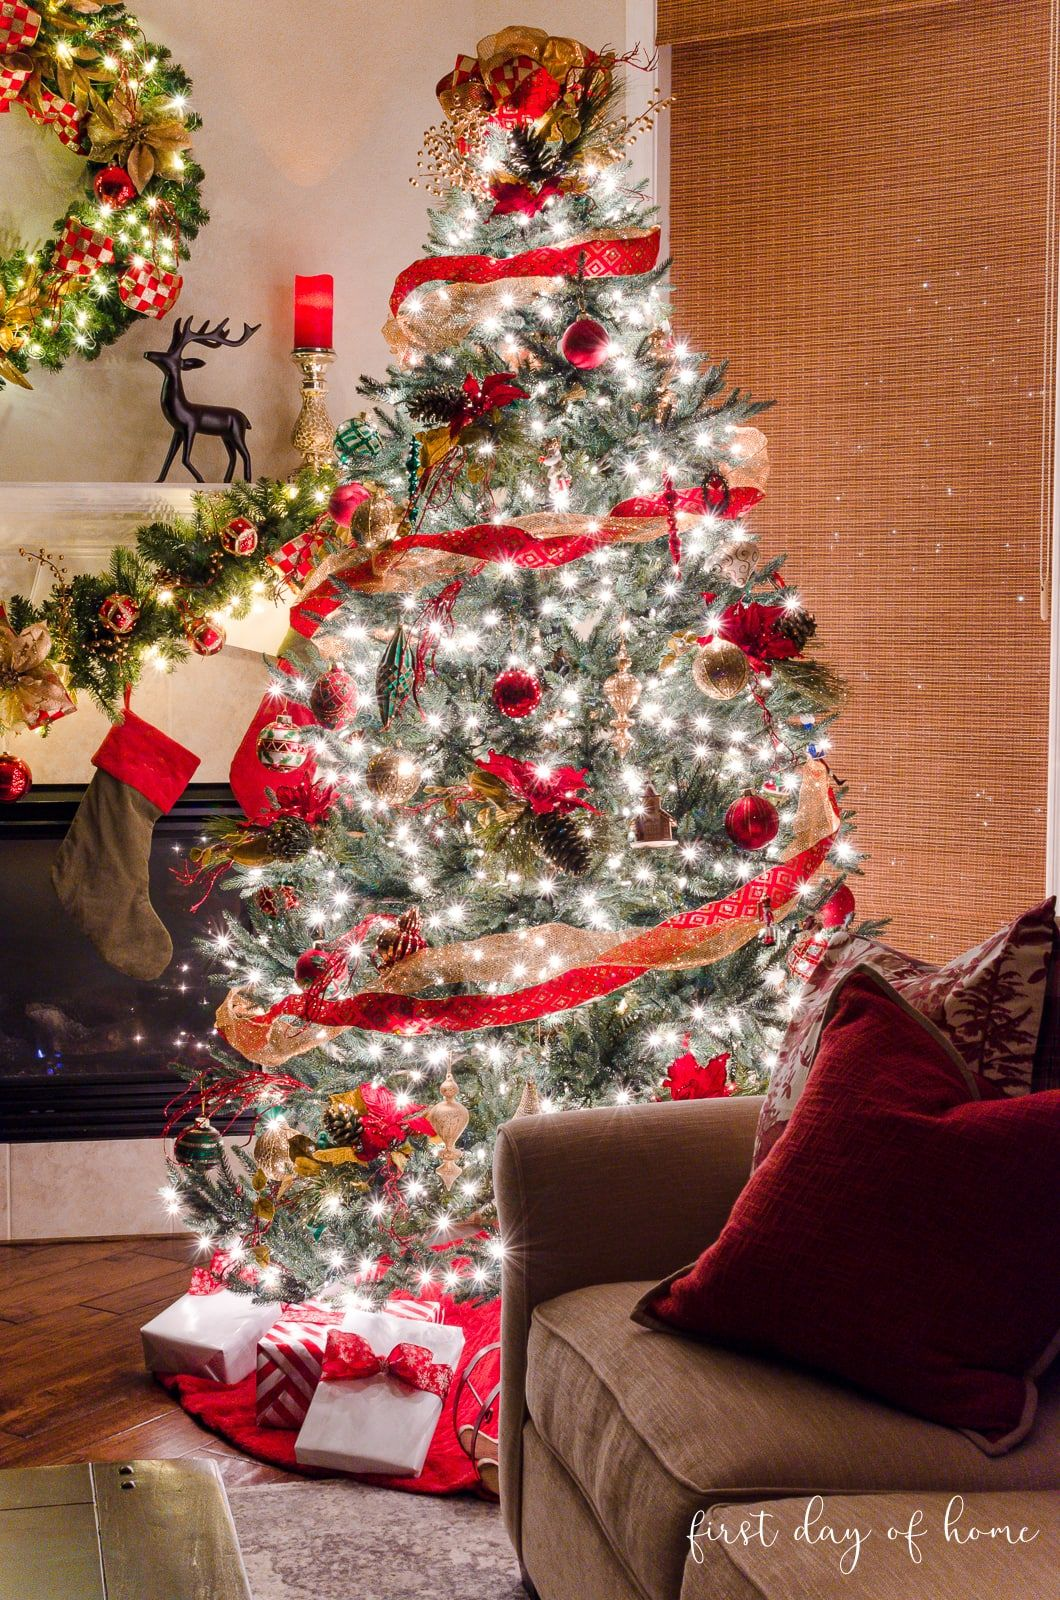 Quick & Easy Tips on Christmas Tree Decorating to Get the